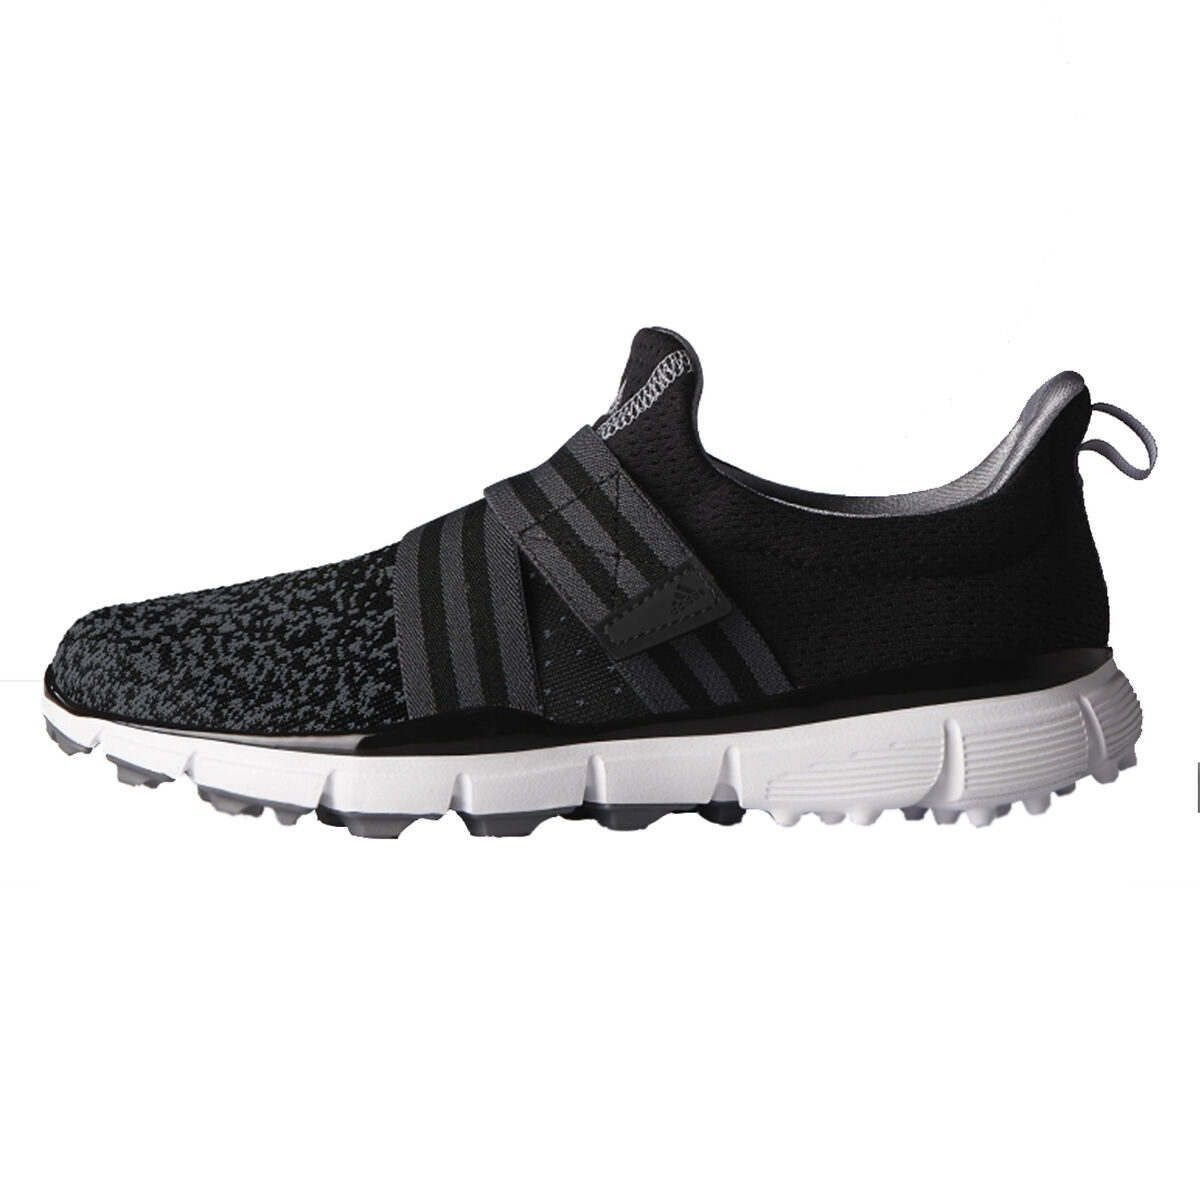 best authentic f1089 771ee adidas climacool Knit Women  39 s Golf Shoe - Black Grey Zoom Image